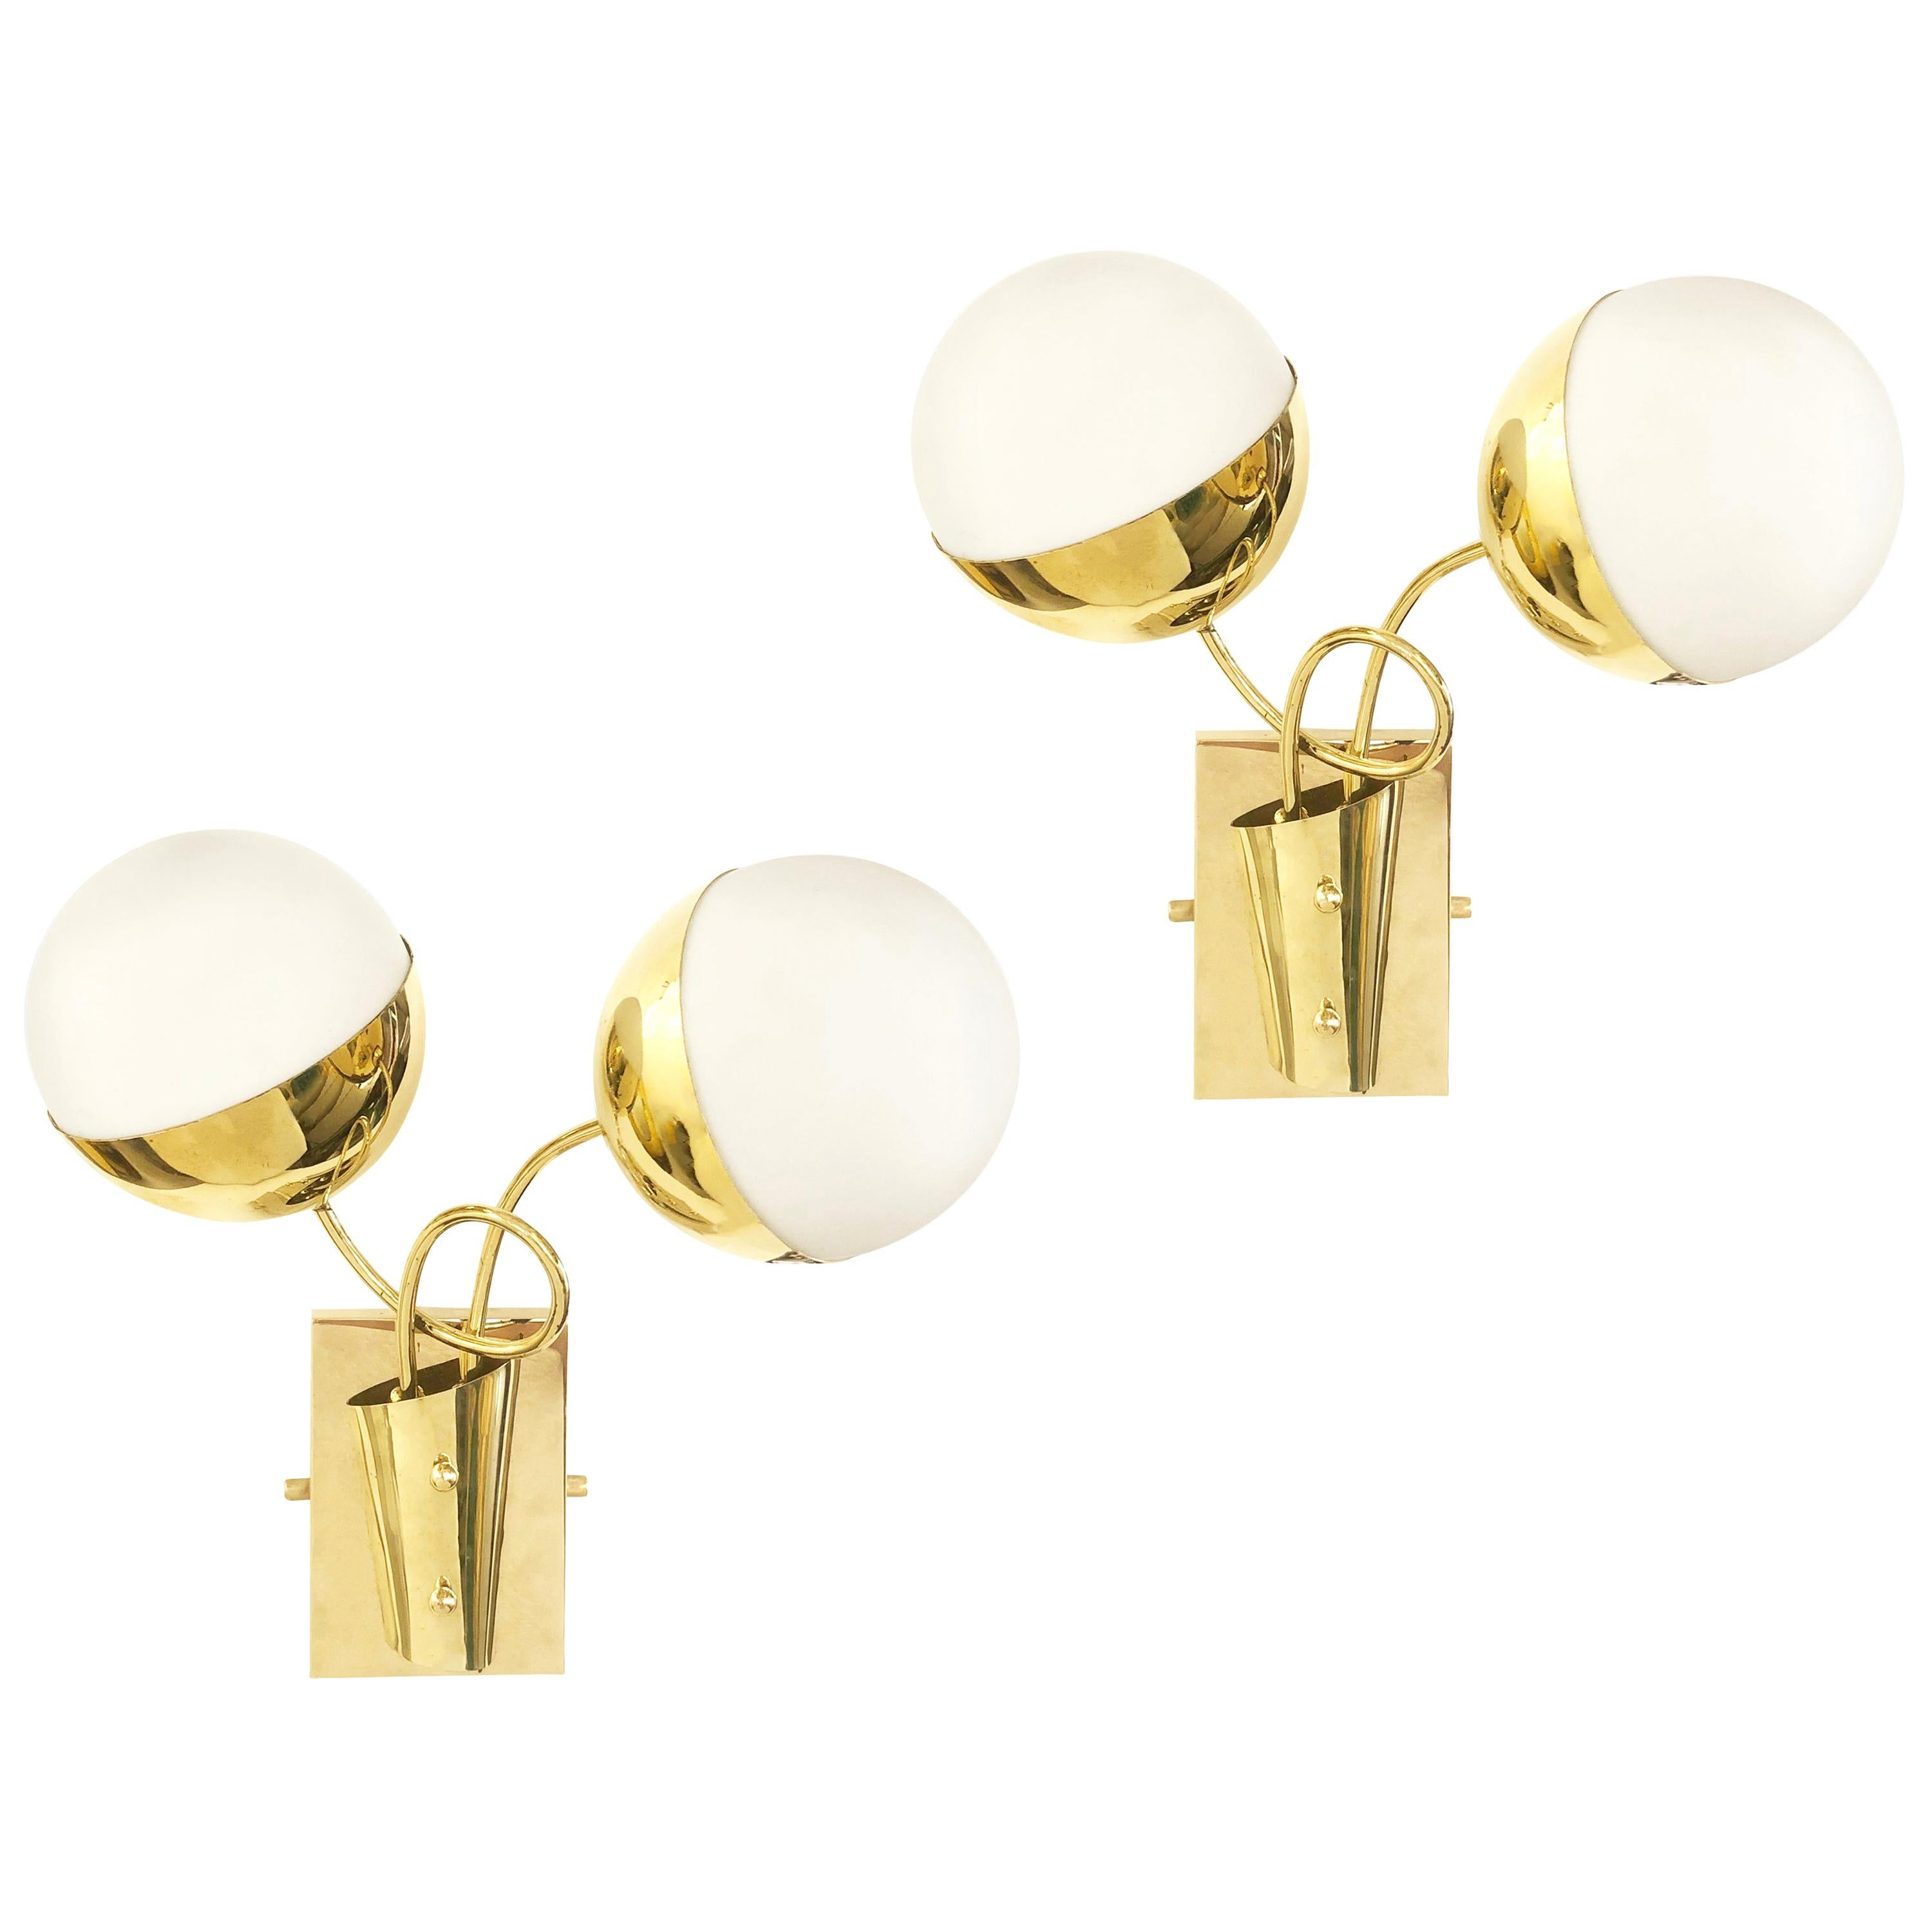 Midcentury Wall Lights with Two Globes